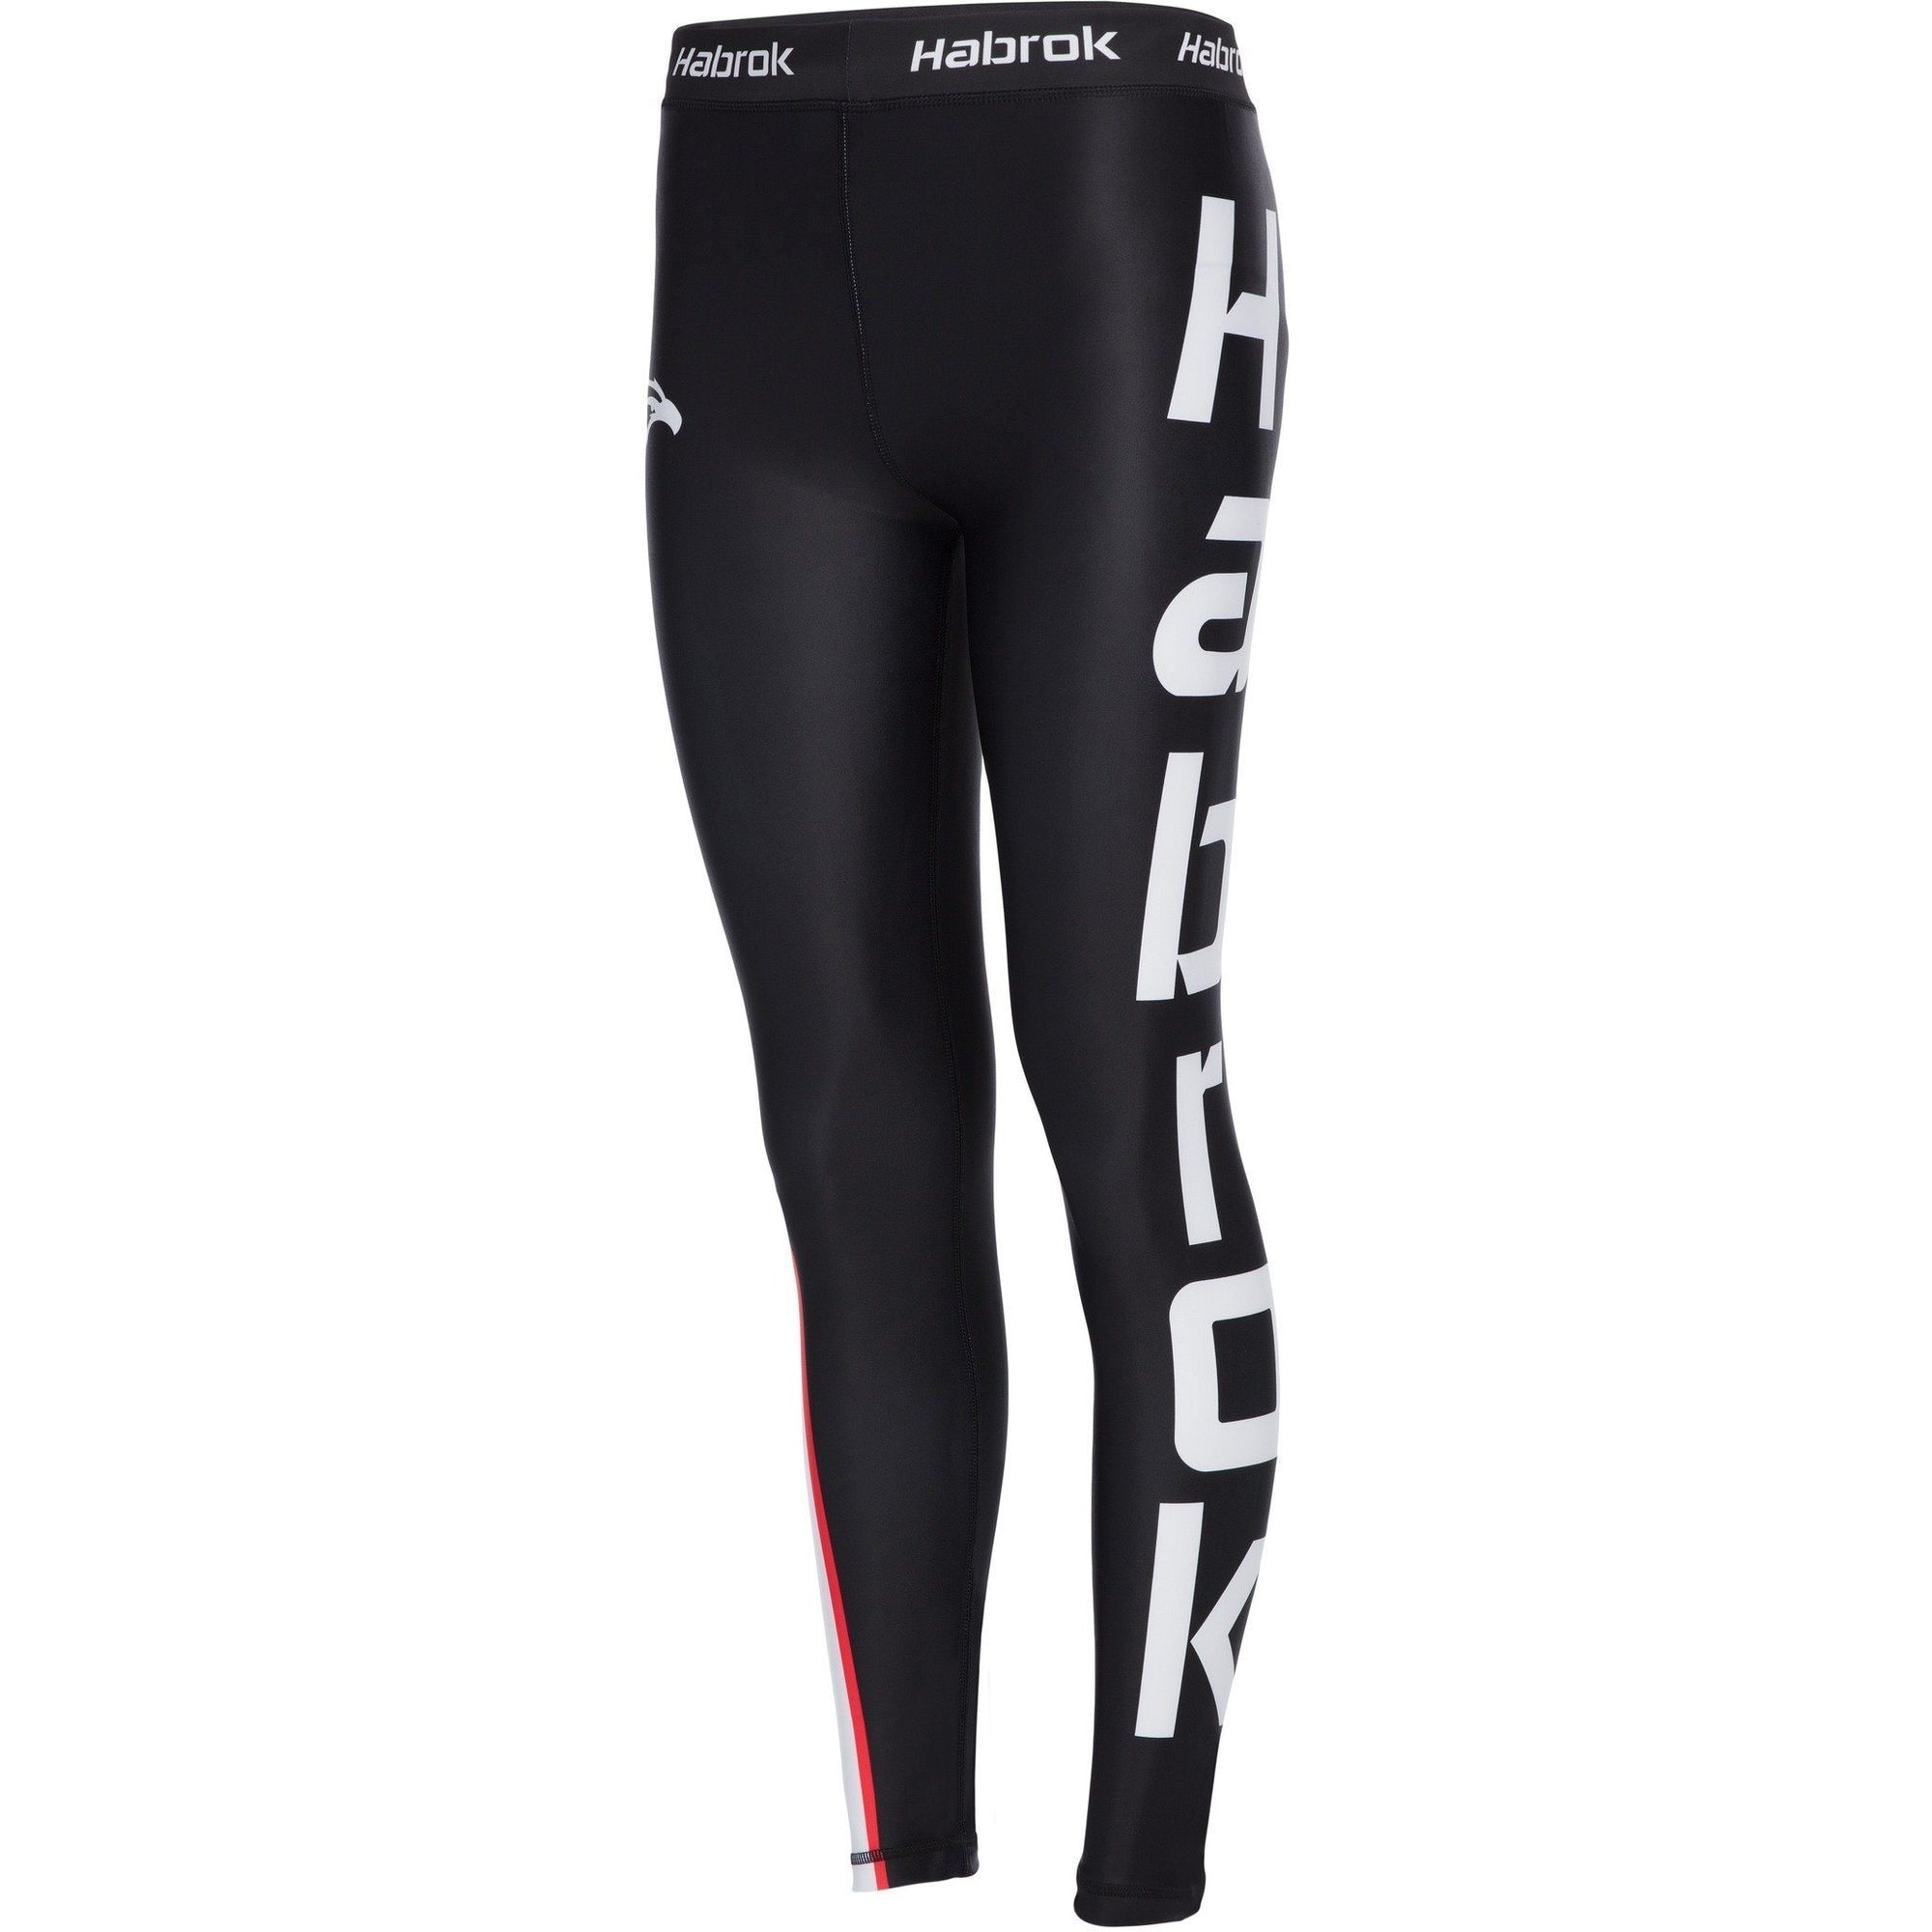 Performance Spats | Women, Spats - Habrok